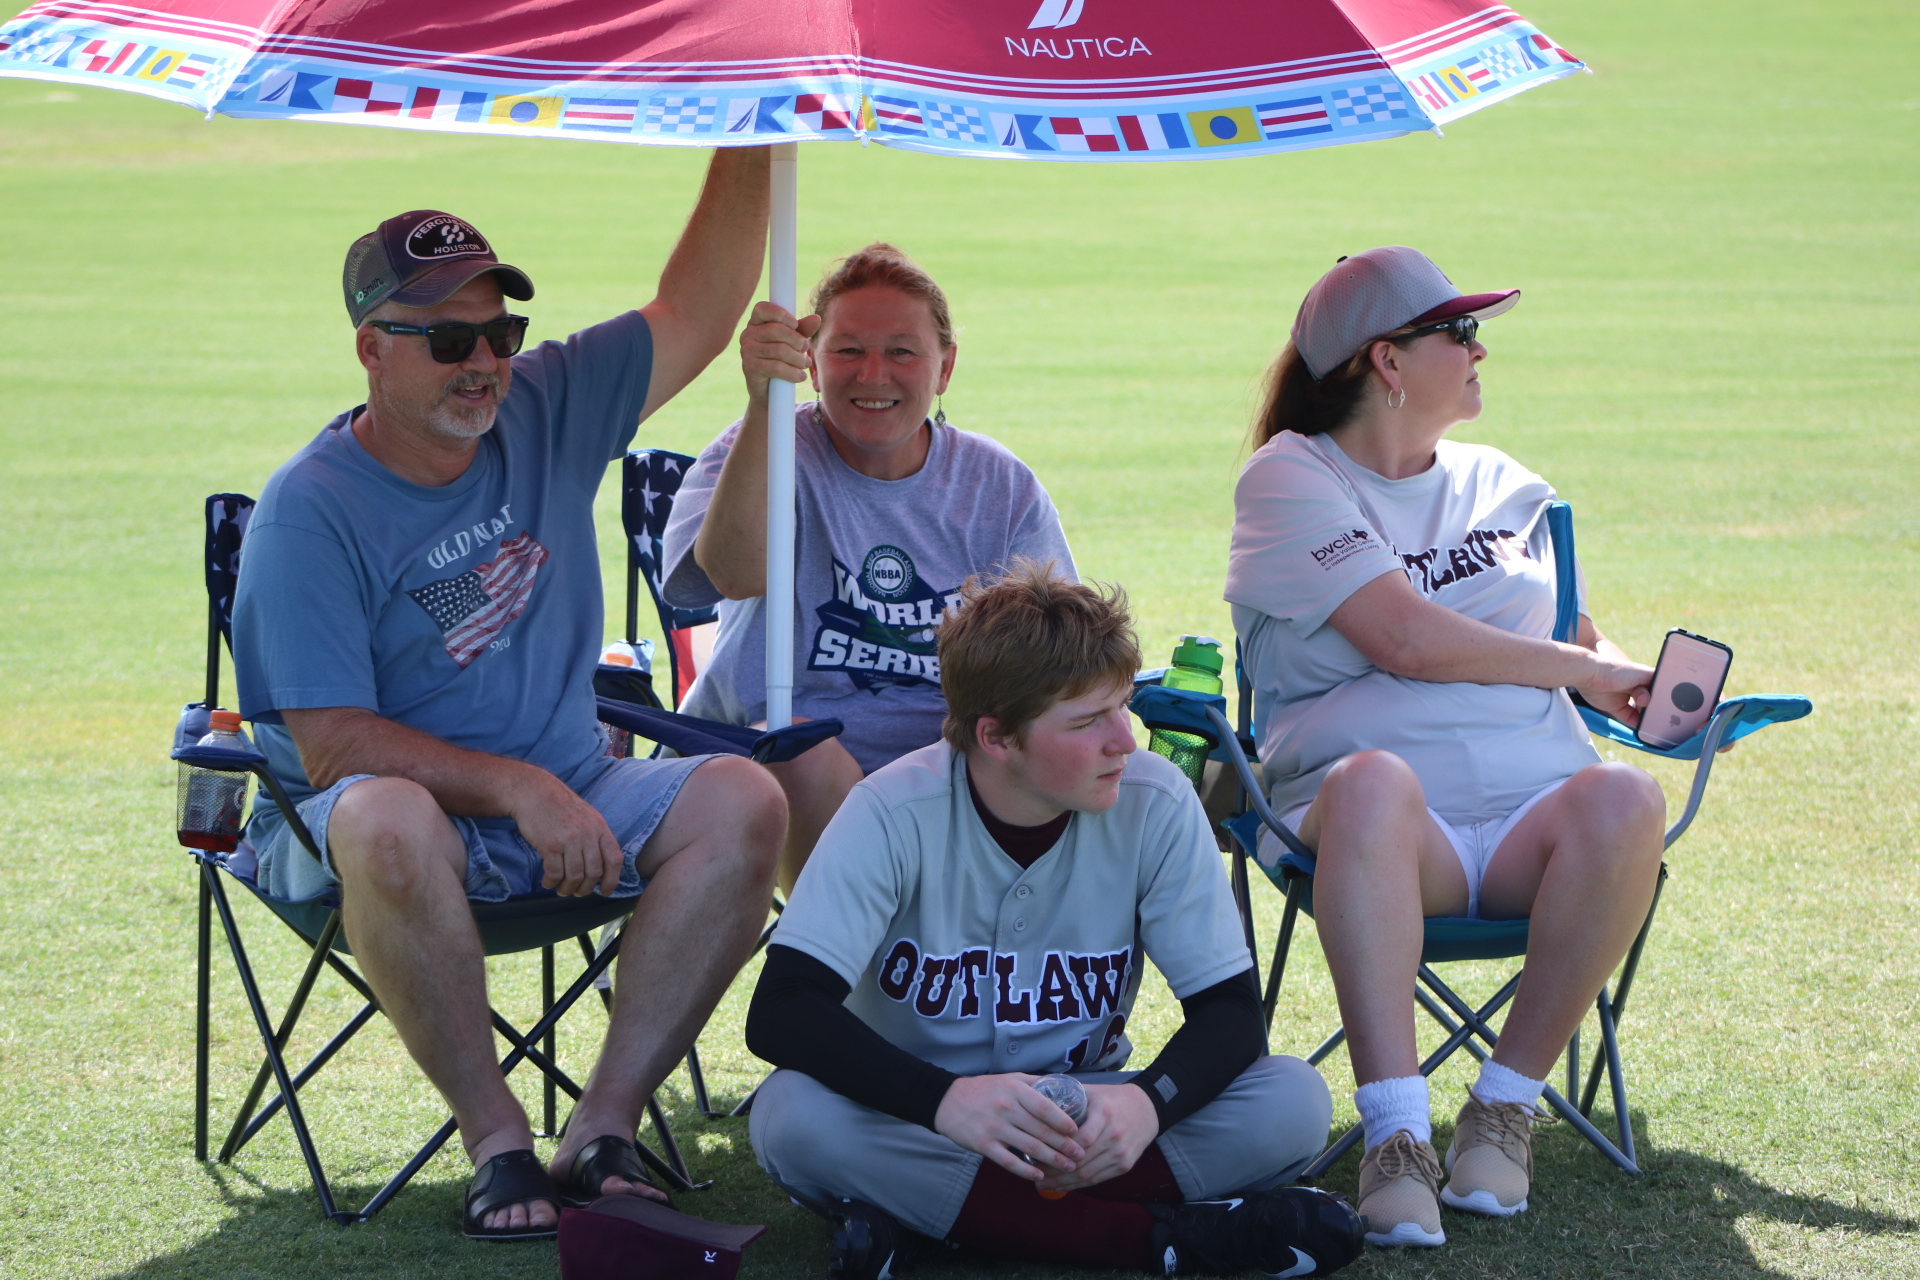 A BCS Outlaw's player rests in the shade of an umbrella held up by a few fans.